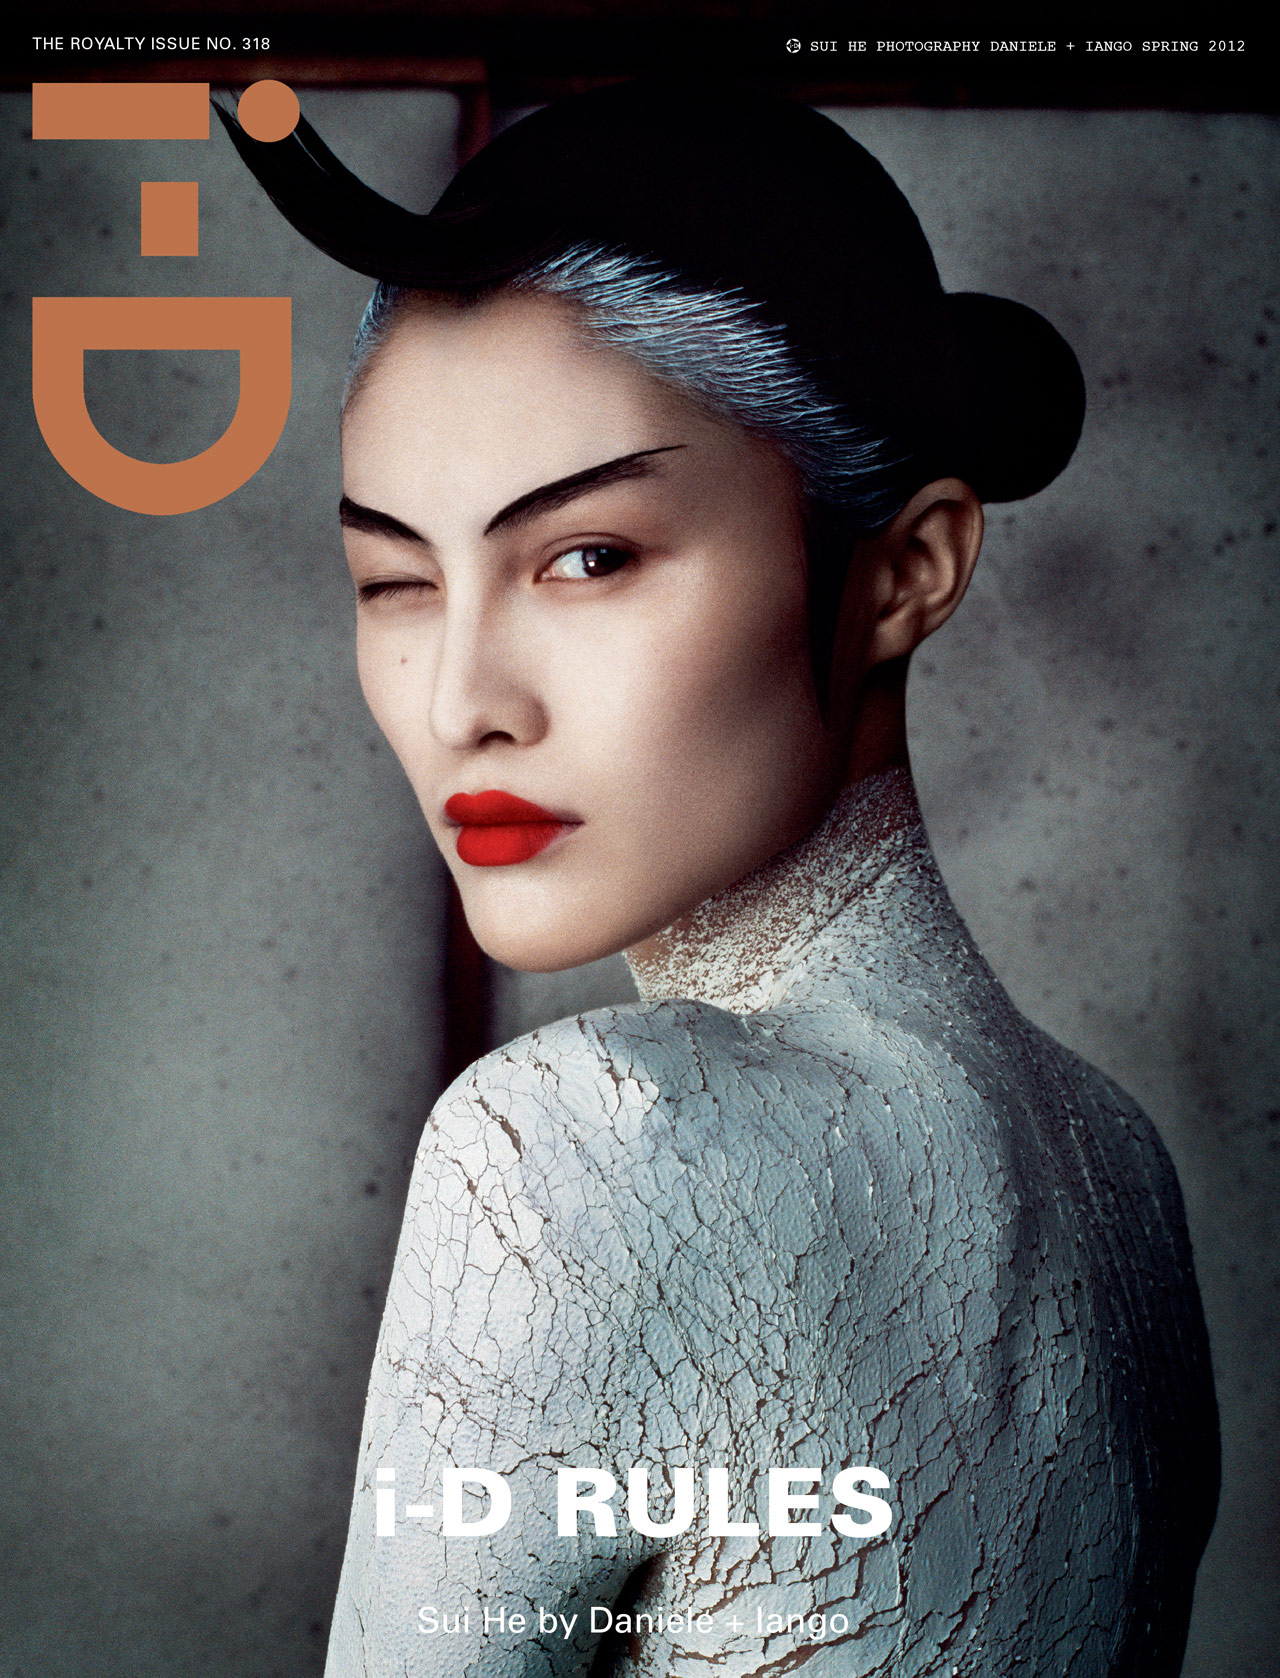 I D 318 The Royalty Issue Models Cover Previews Part 2